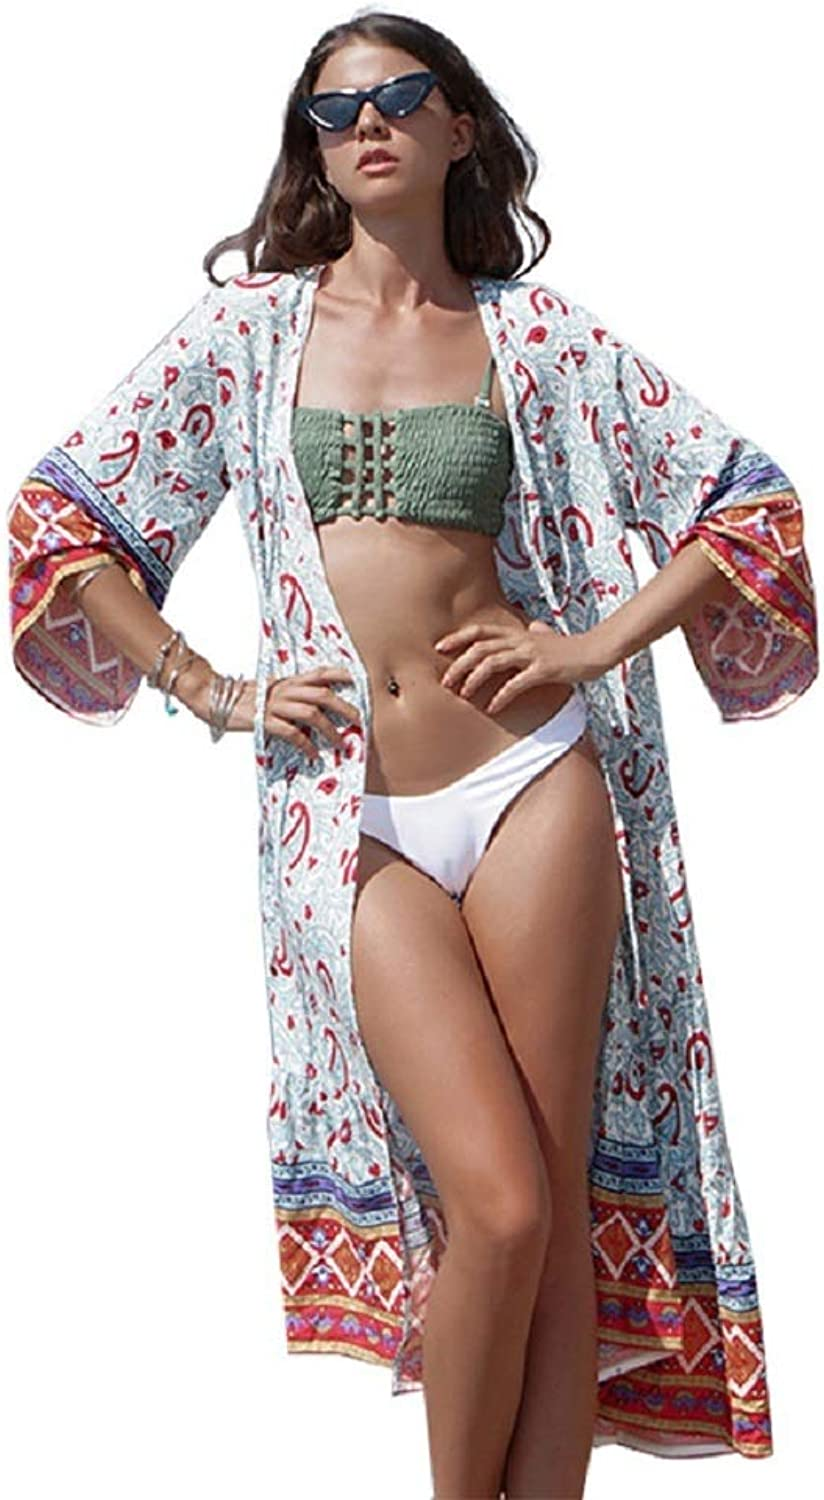 YJiaJu Sexy Beach Elegant Party Women Dress Spring Summer Sunscreen Cropped Sleeves Printed Long Laceup Cardigan Cotton VNeck SevenQuarter Sleeve (color   White, Size   M)